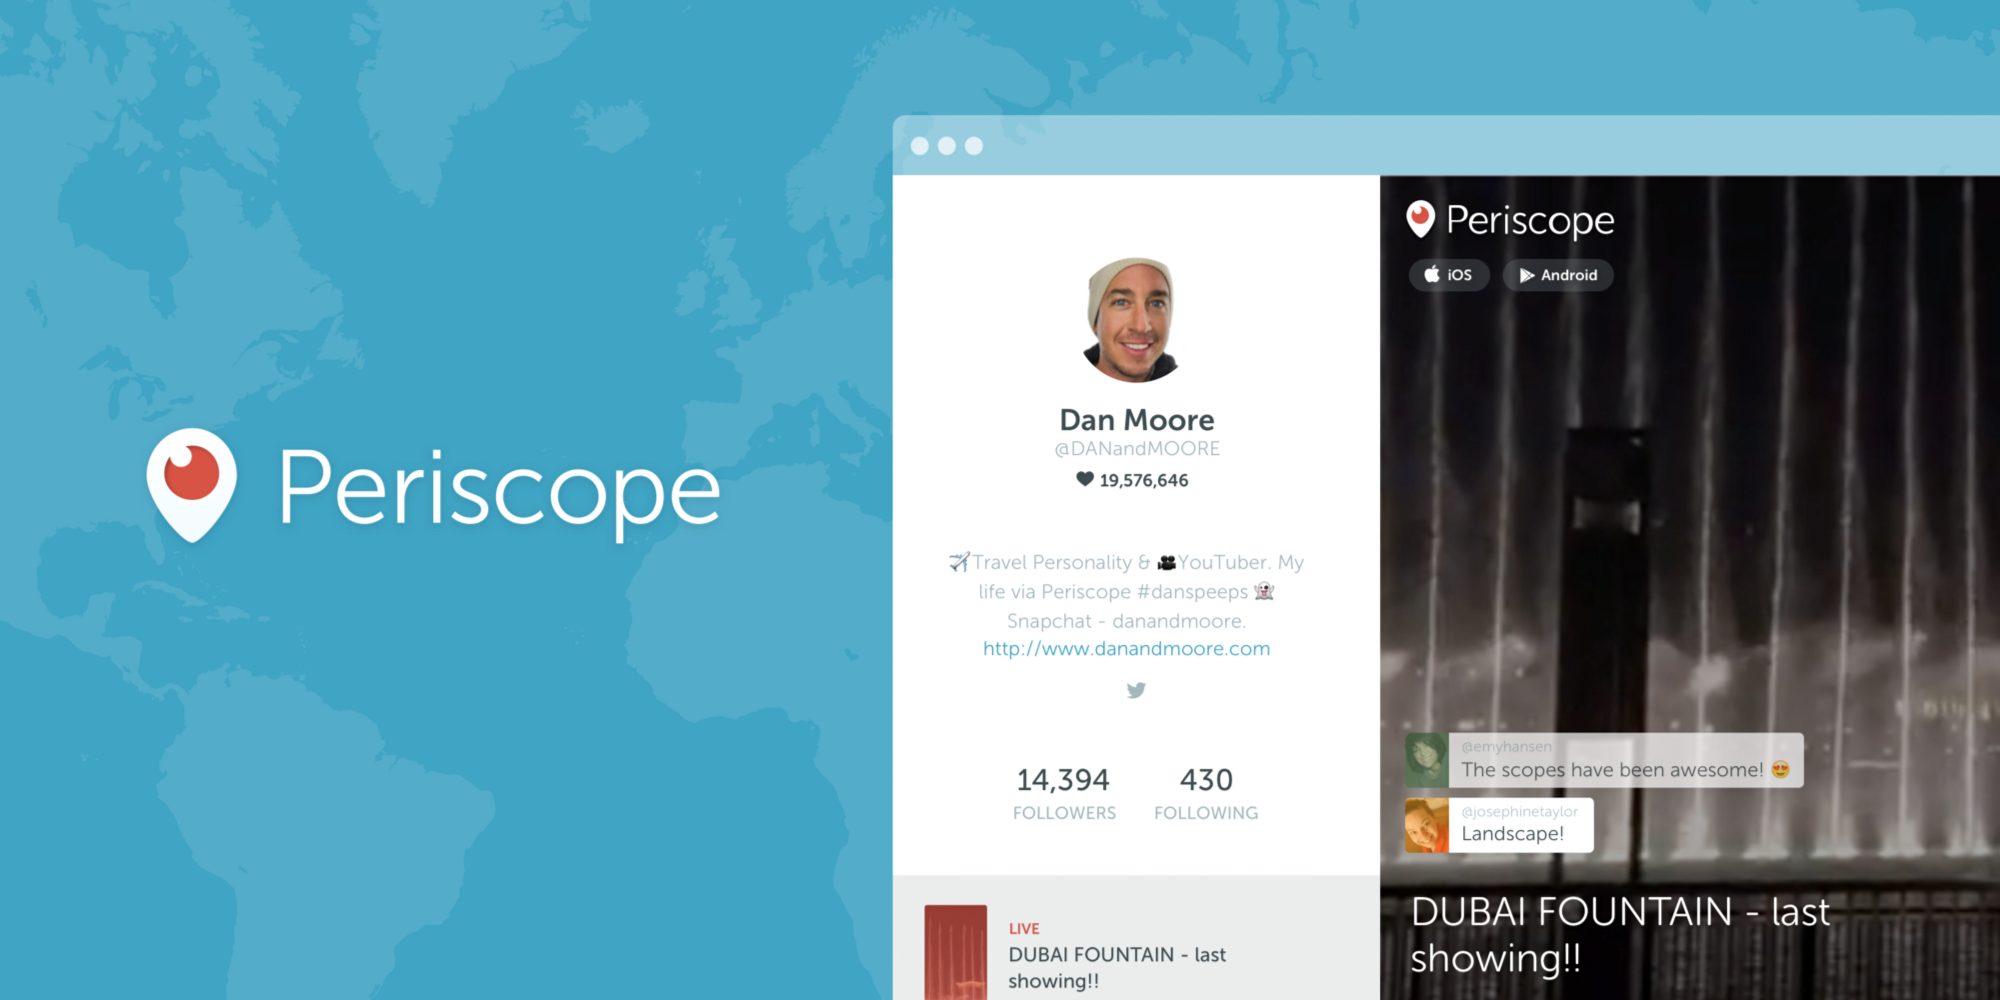 Periscope Launches Web Profiles Making it Easier to Find Content | Social Media Today